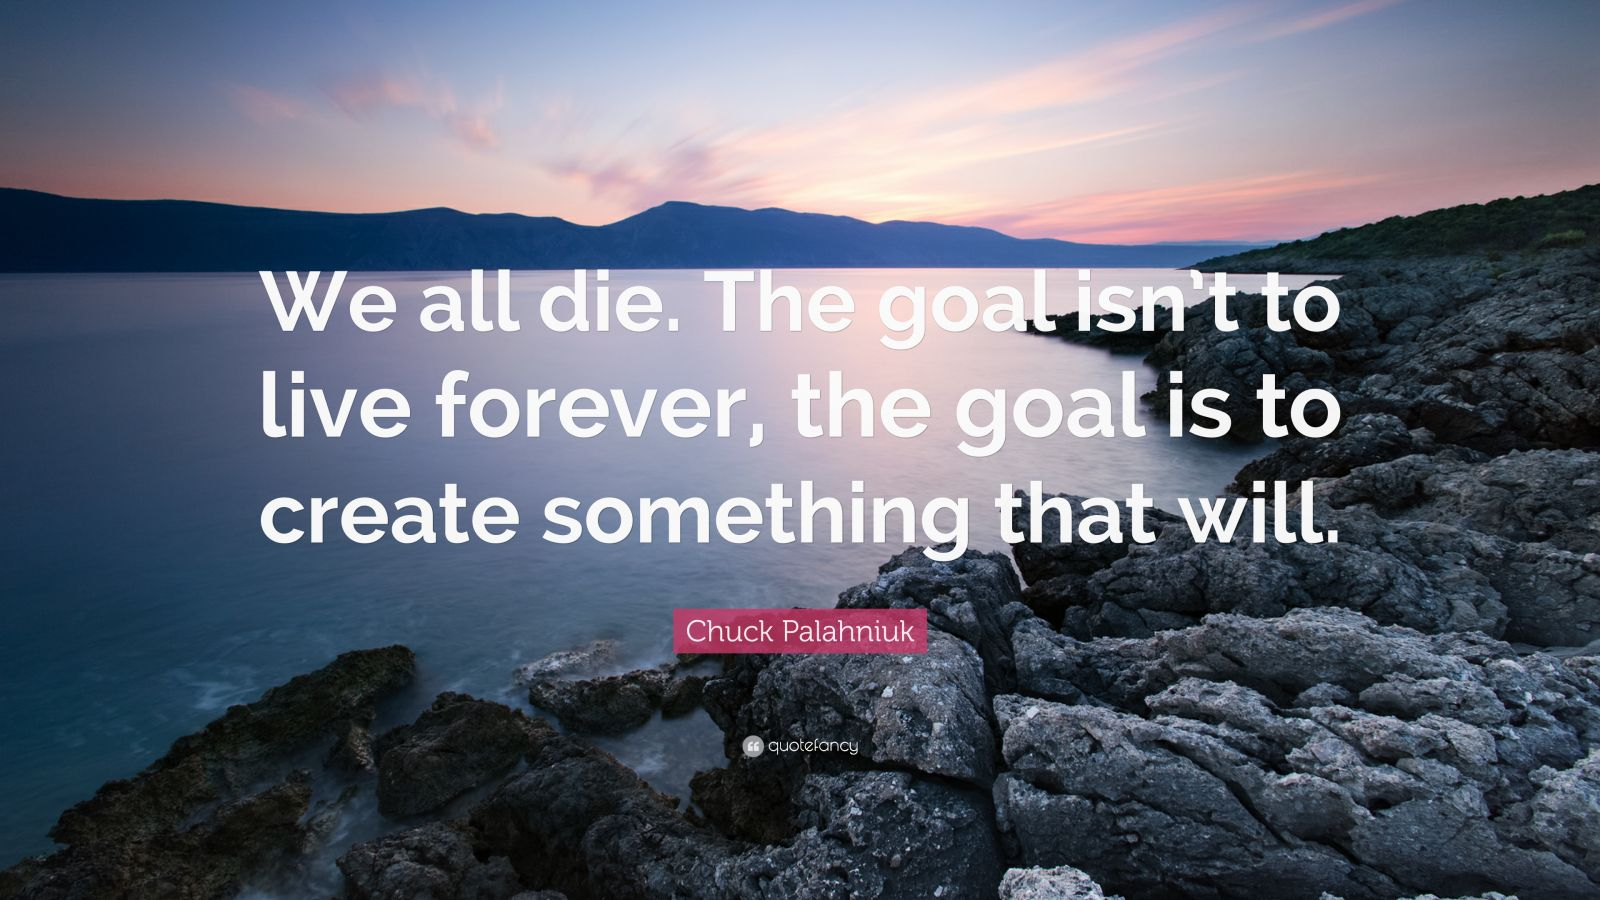 Theodore Roosevelt Wallpaper Quote Chuck Palahniuk Quote We All Die The Goal Isn T To Live